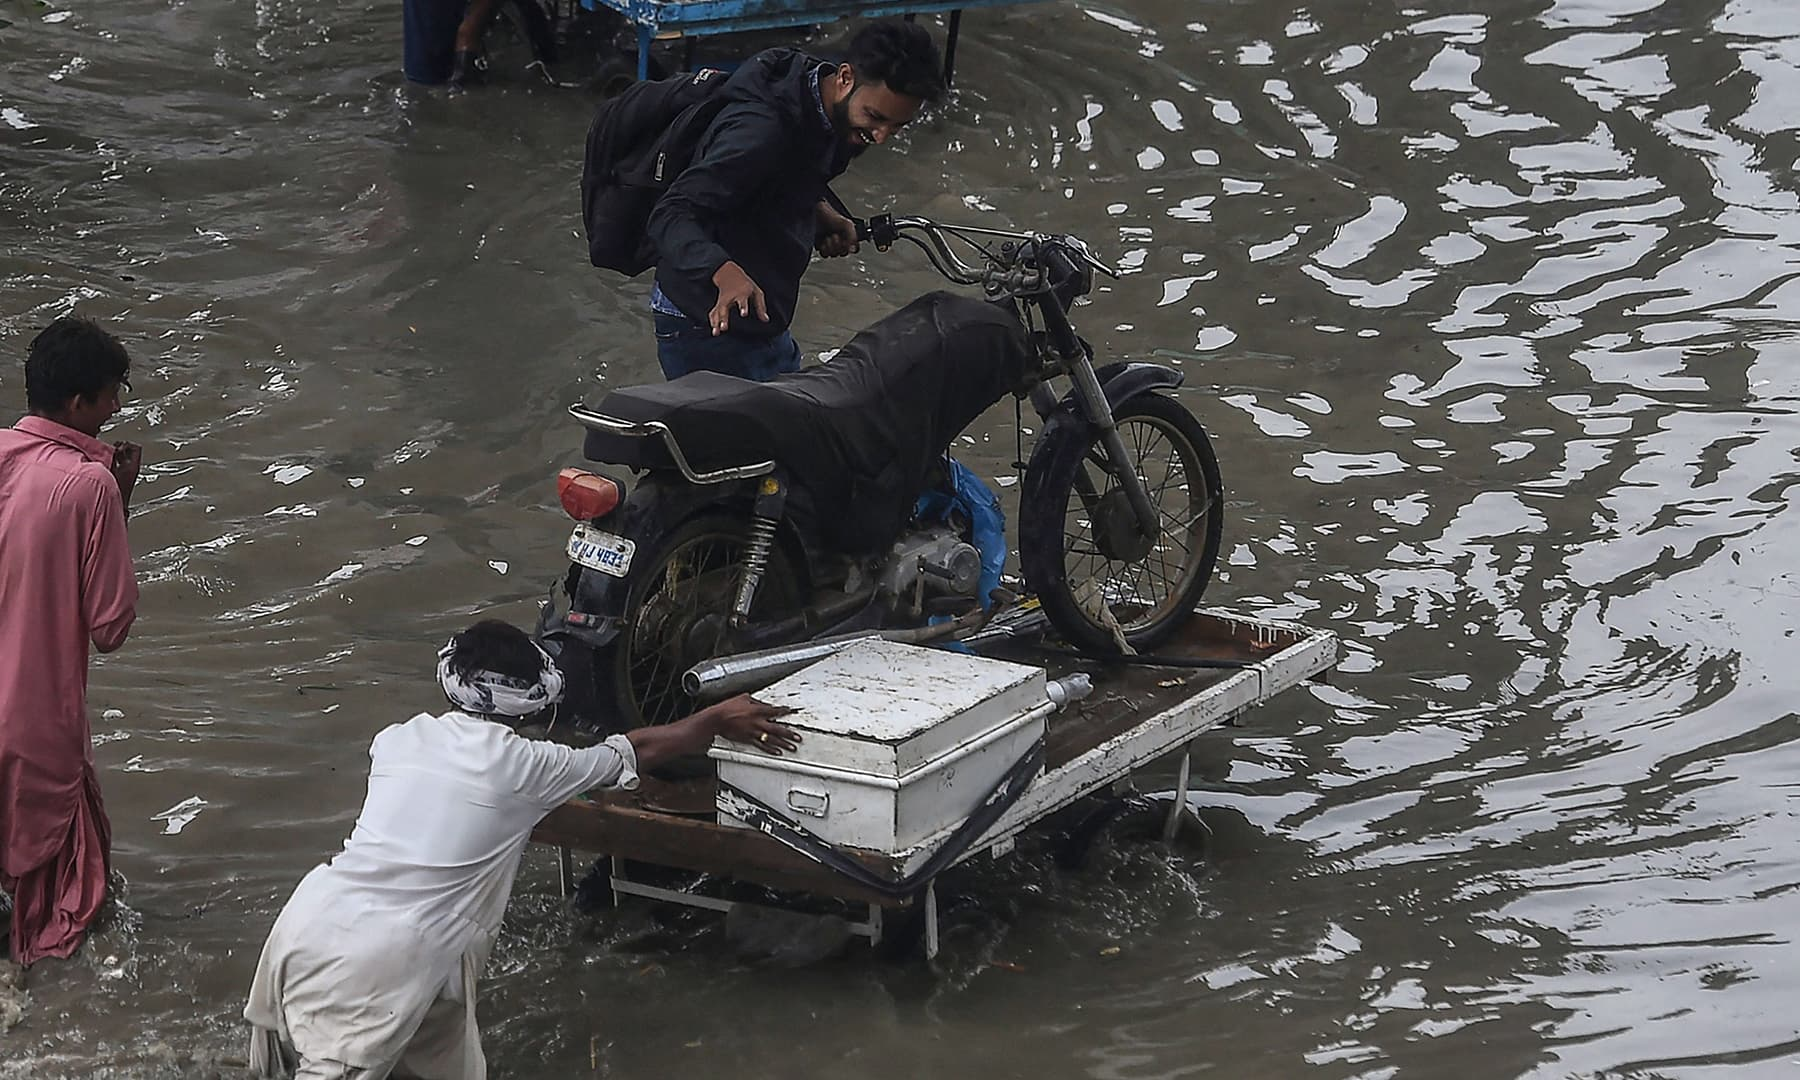 A man pushes his cart carrying a motorcyclist through a flooded street after heavy rainfall in Karachi. — AFP